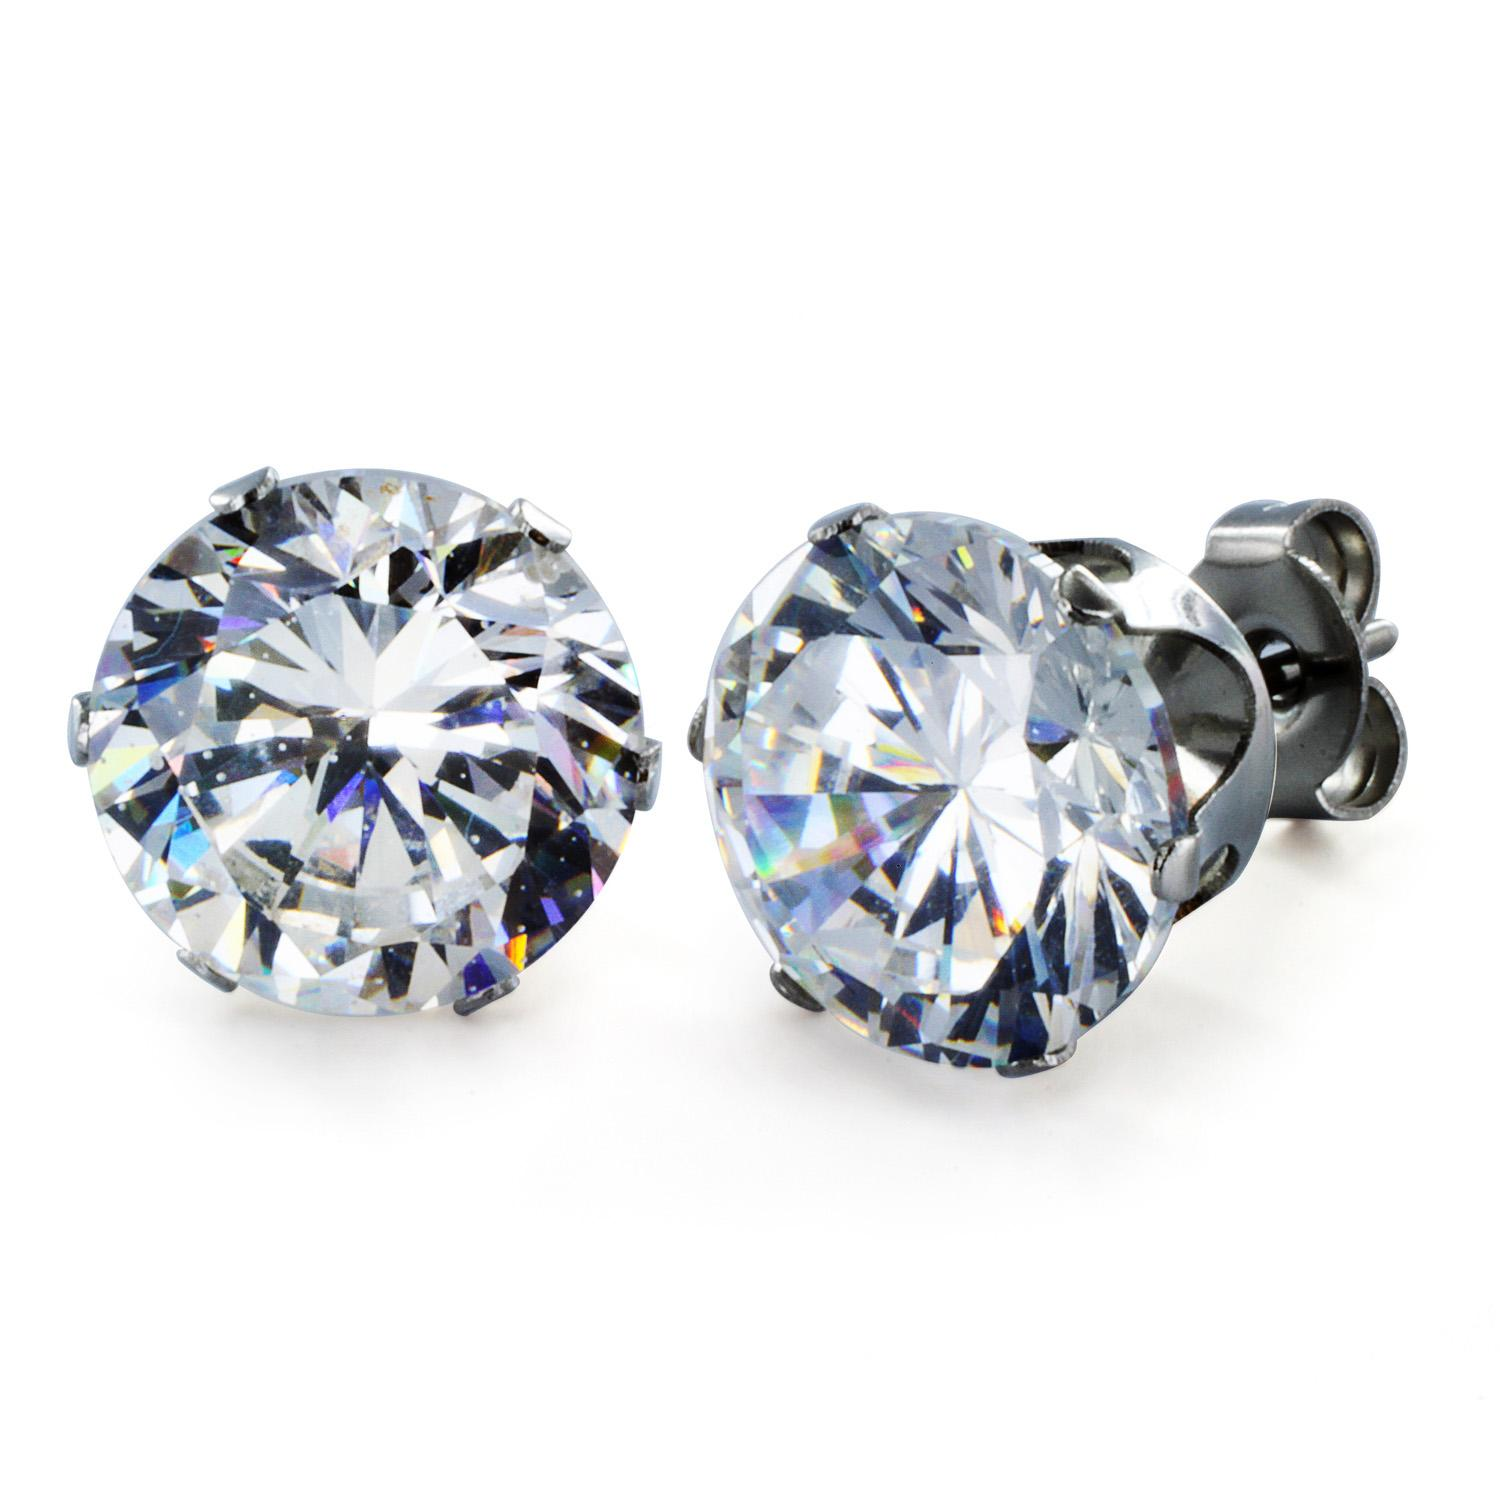 Stainless Steel Stud Earrings with Round Clear CZ - 10 mm